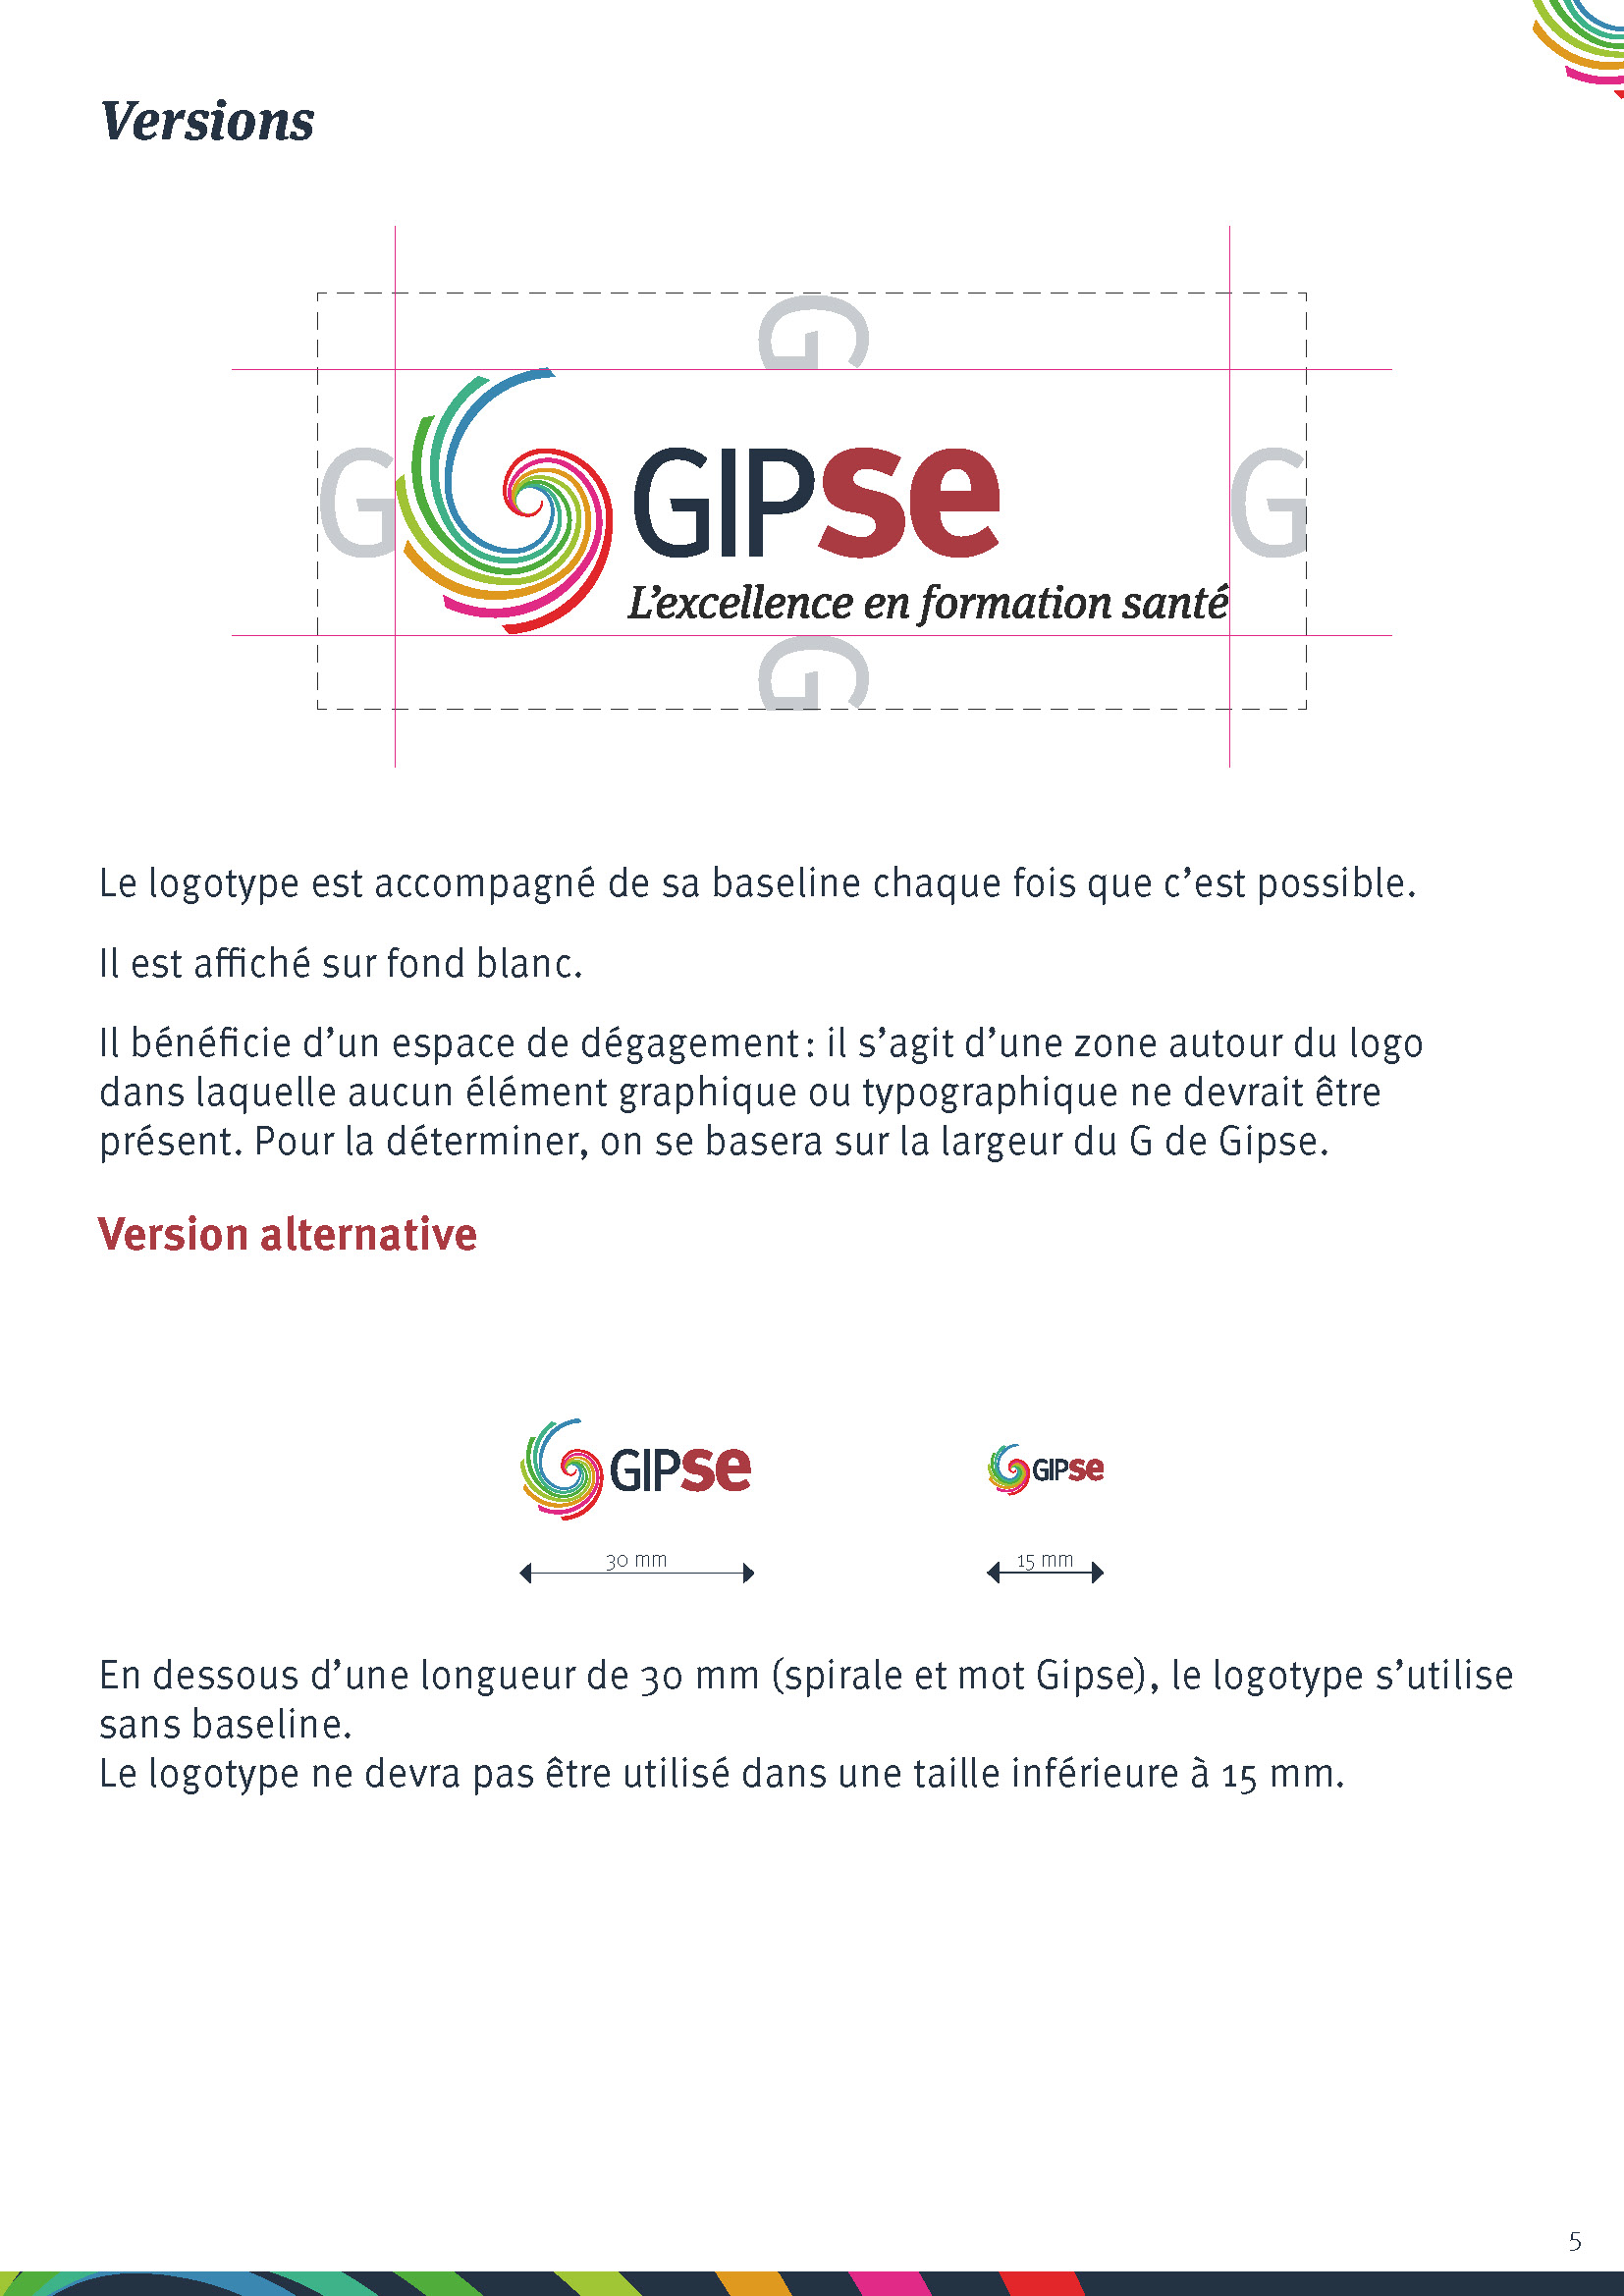 Gipse, versions du logotype